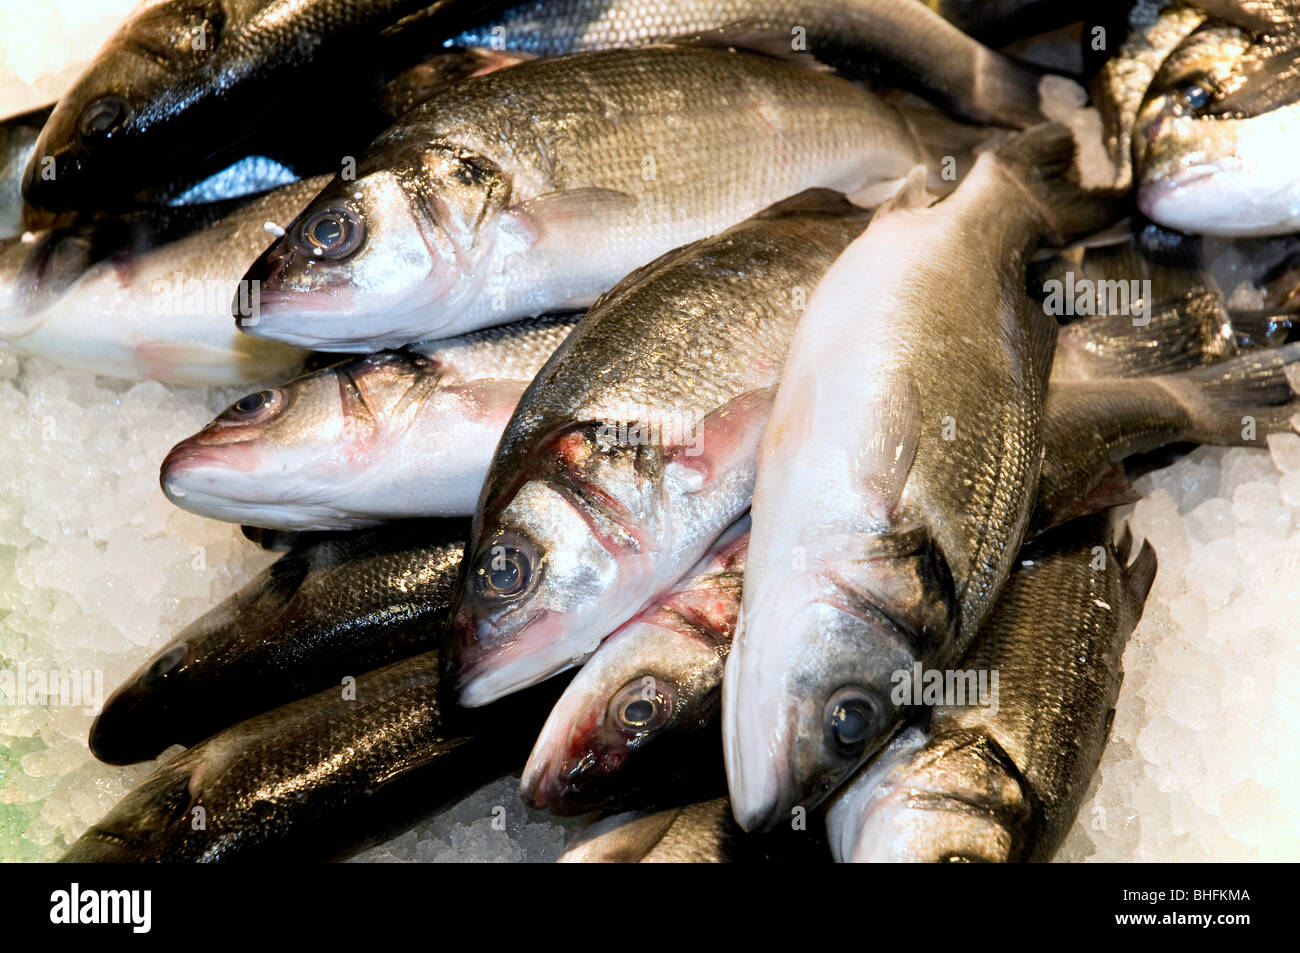 Fish for sale in a market - Stock Image